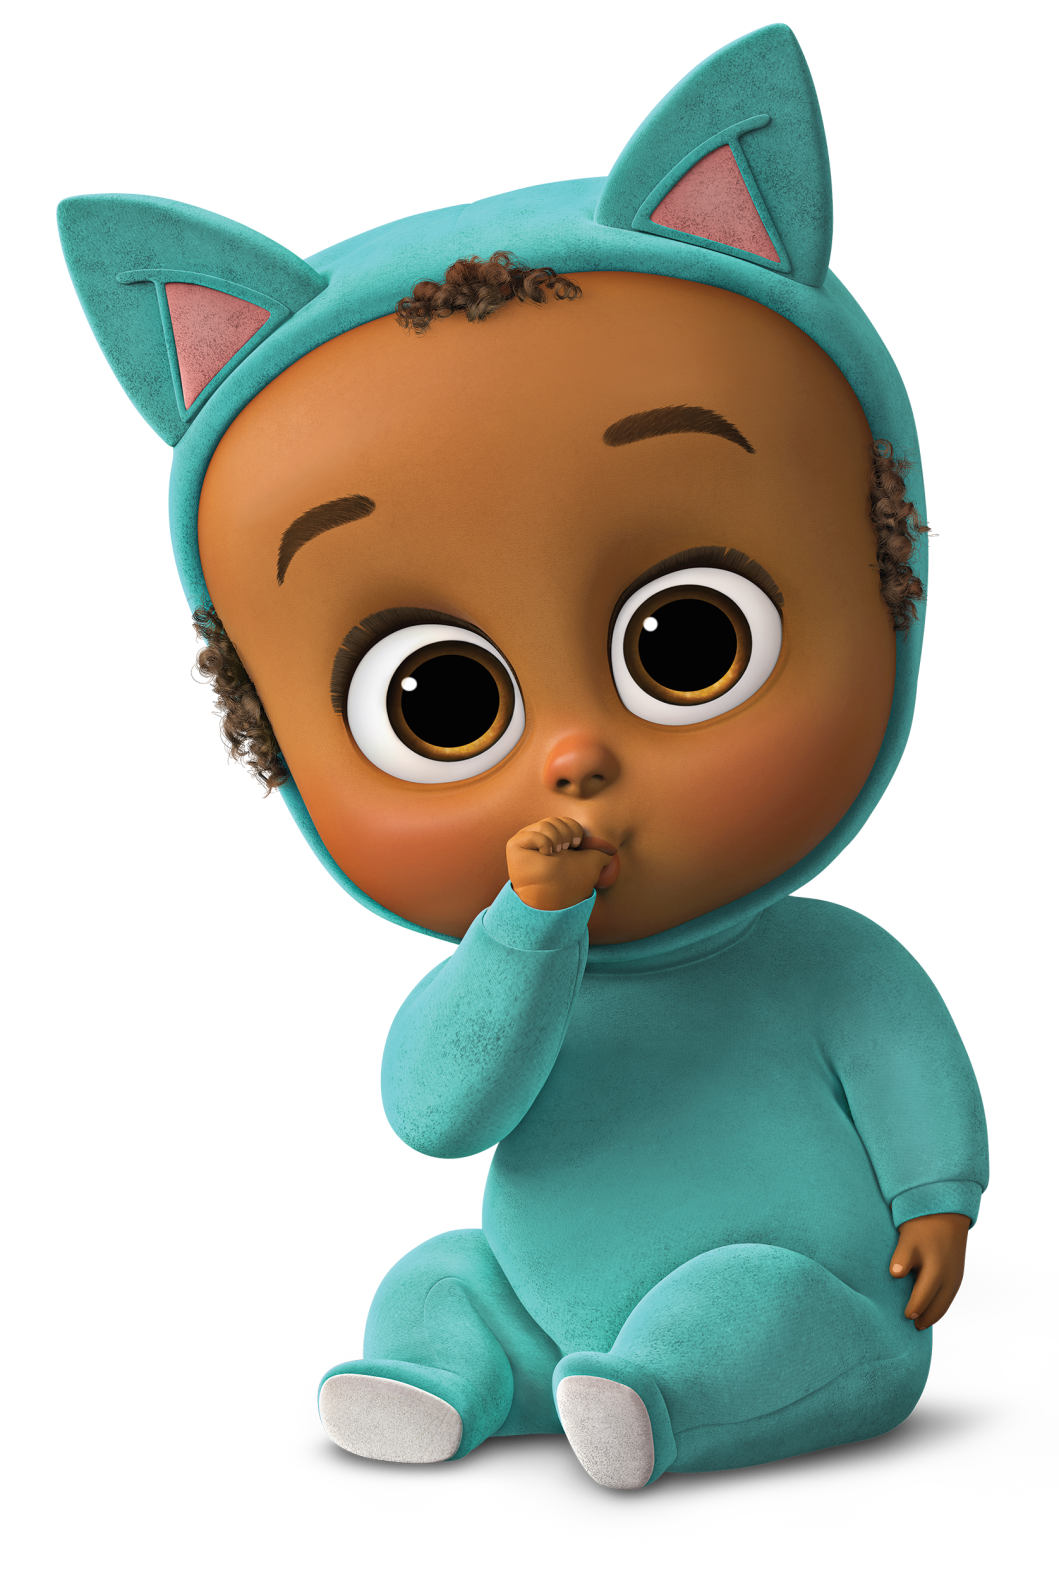 cartoon characters the boss baby png #33413